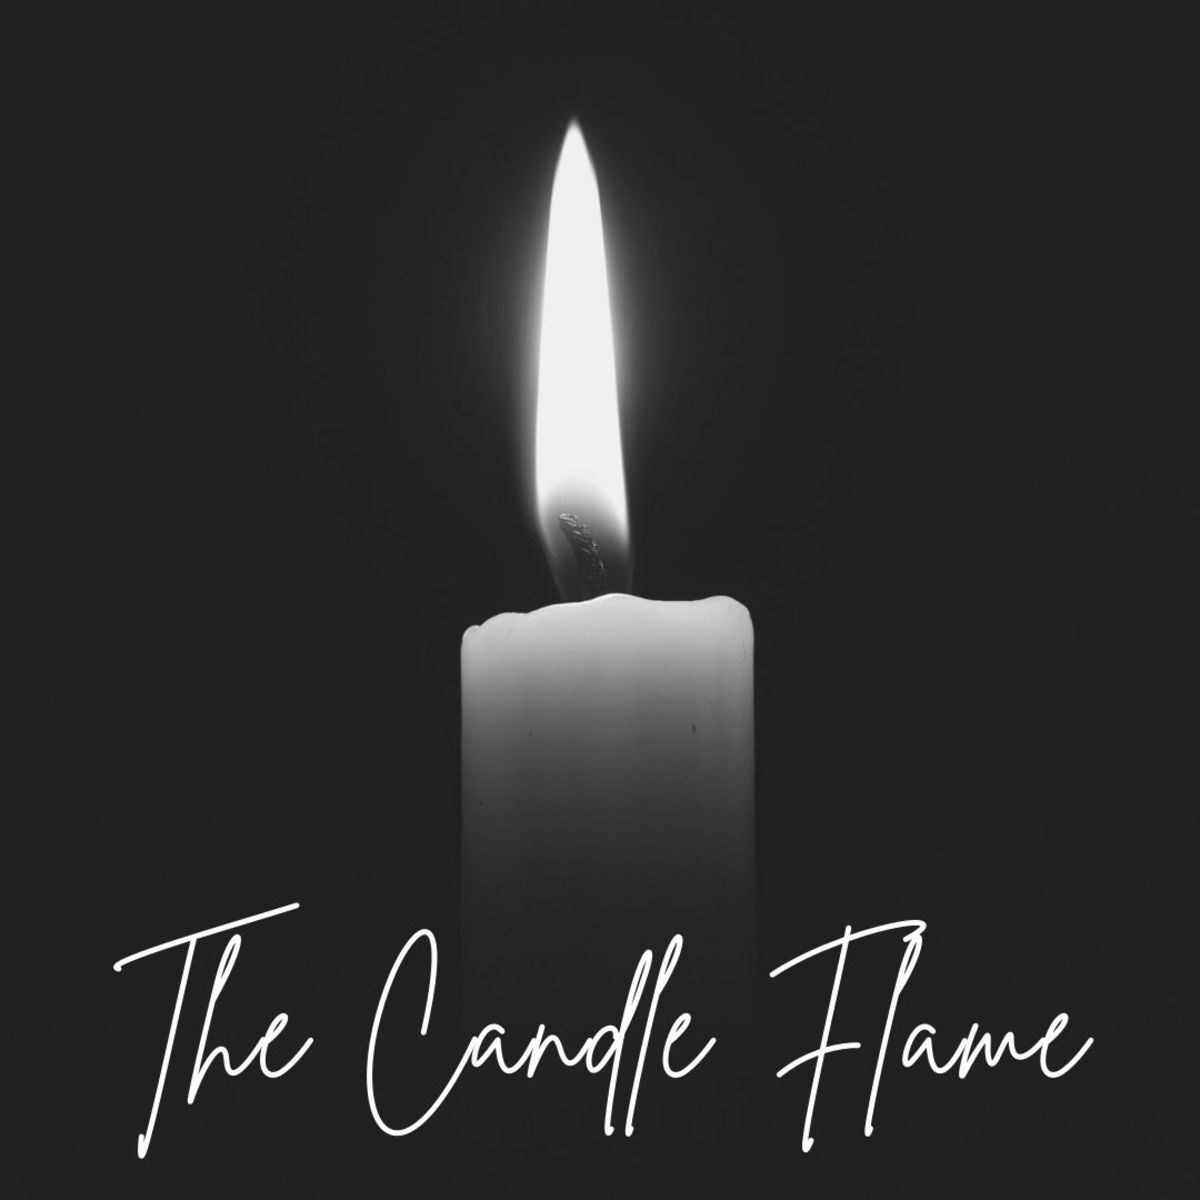 Candles are a common sight in many rituals and in prayer and meditation. There are several superstitions related to candle flames.